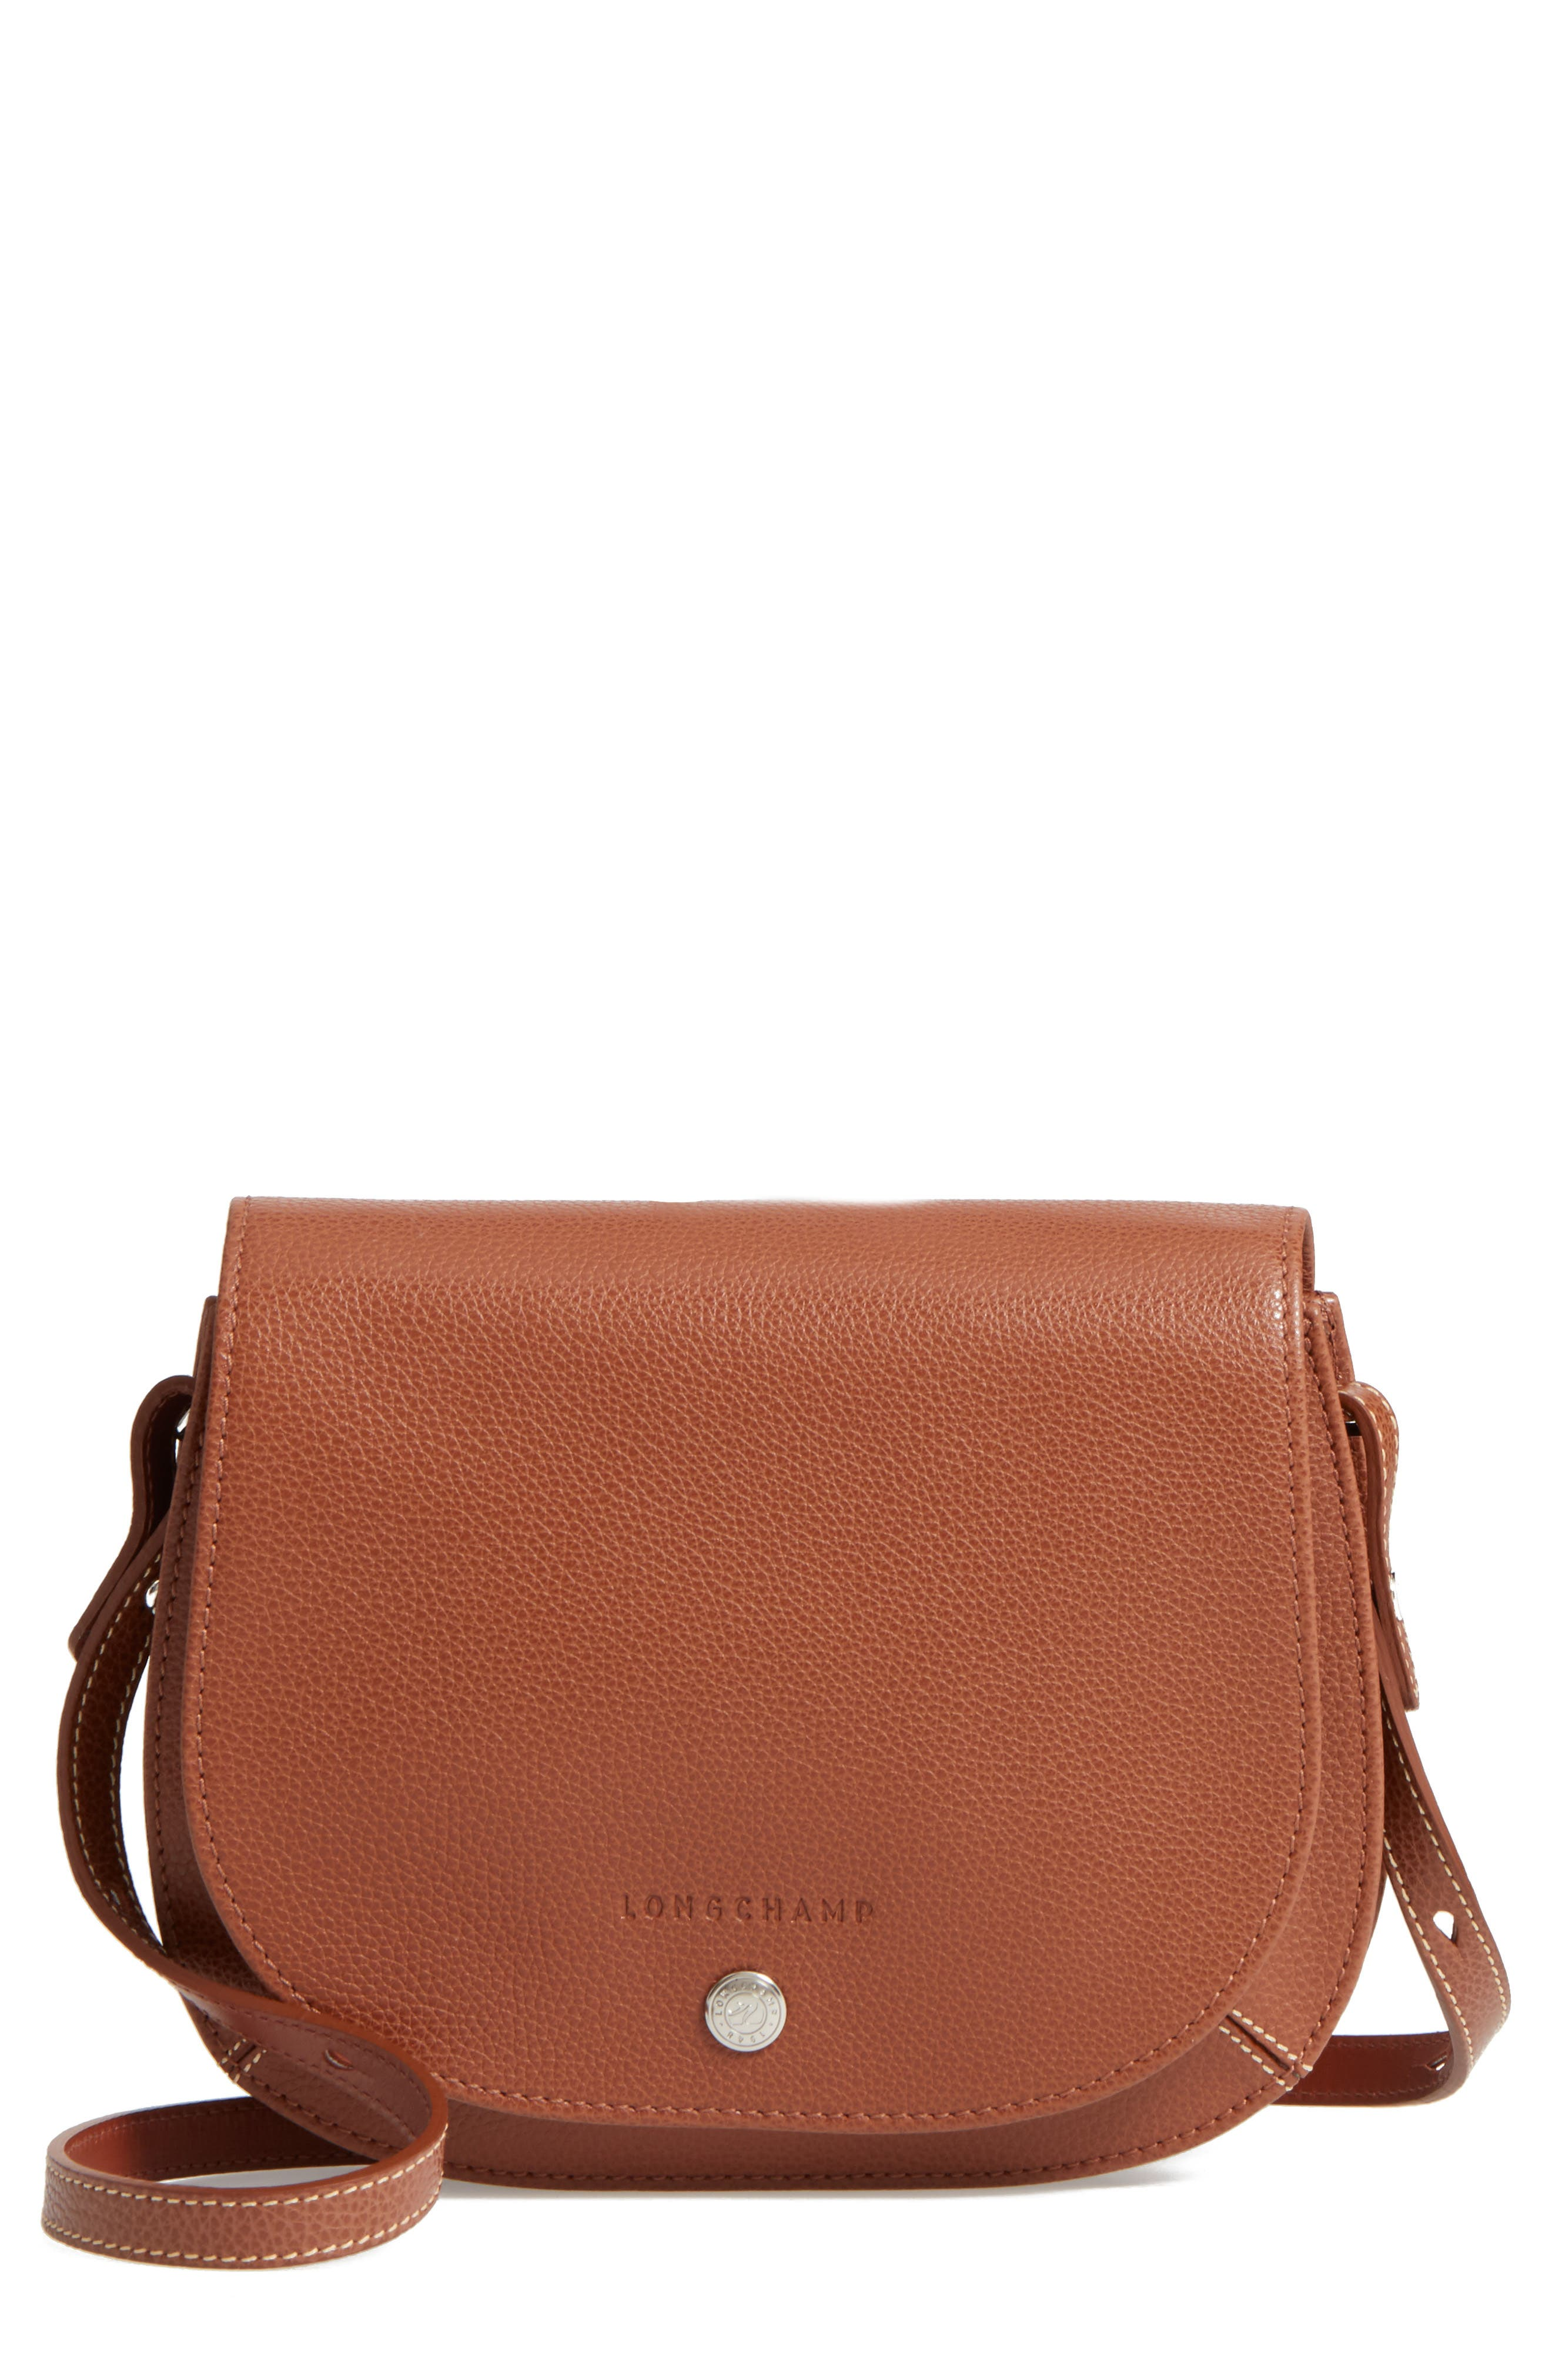 Alternate Image 1 Selected - Longchamp Small Le Foulonne Leather Crossbody Bag